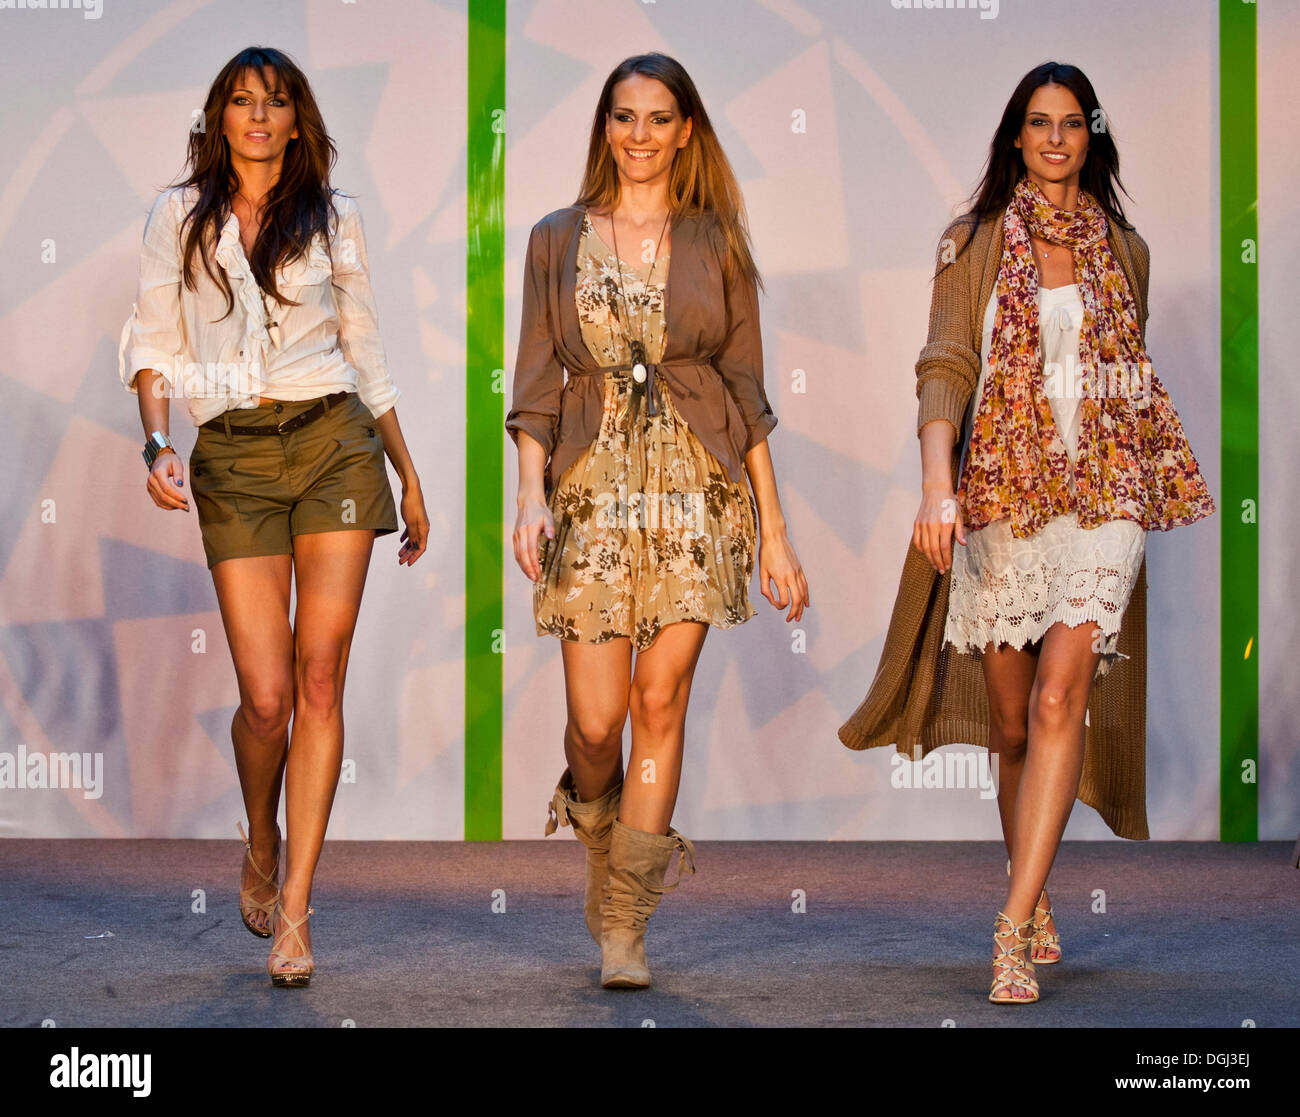 Three models with long hair on a stage - Stock Image